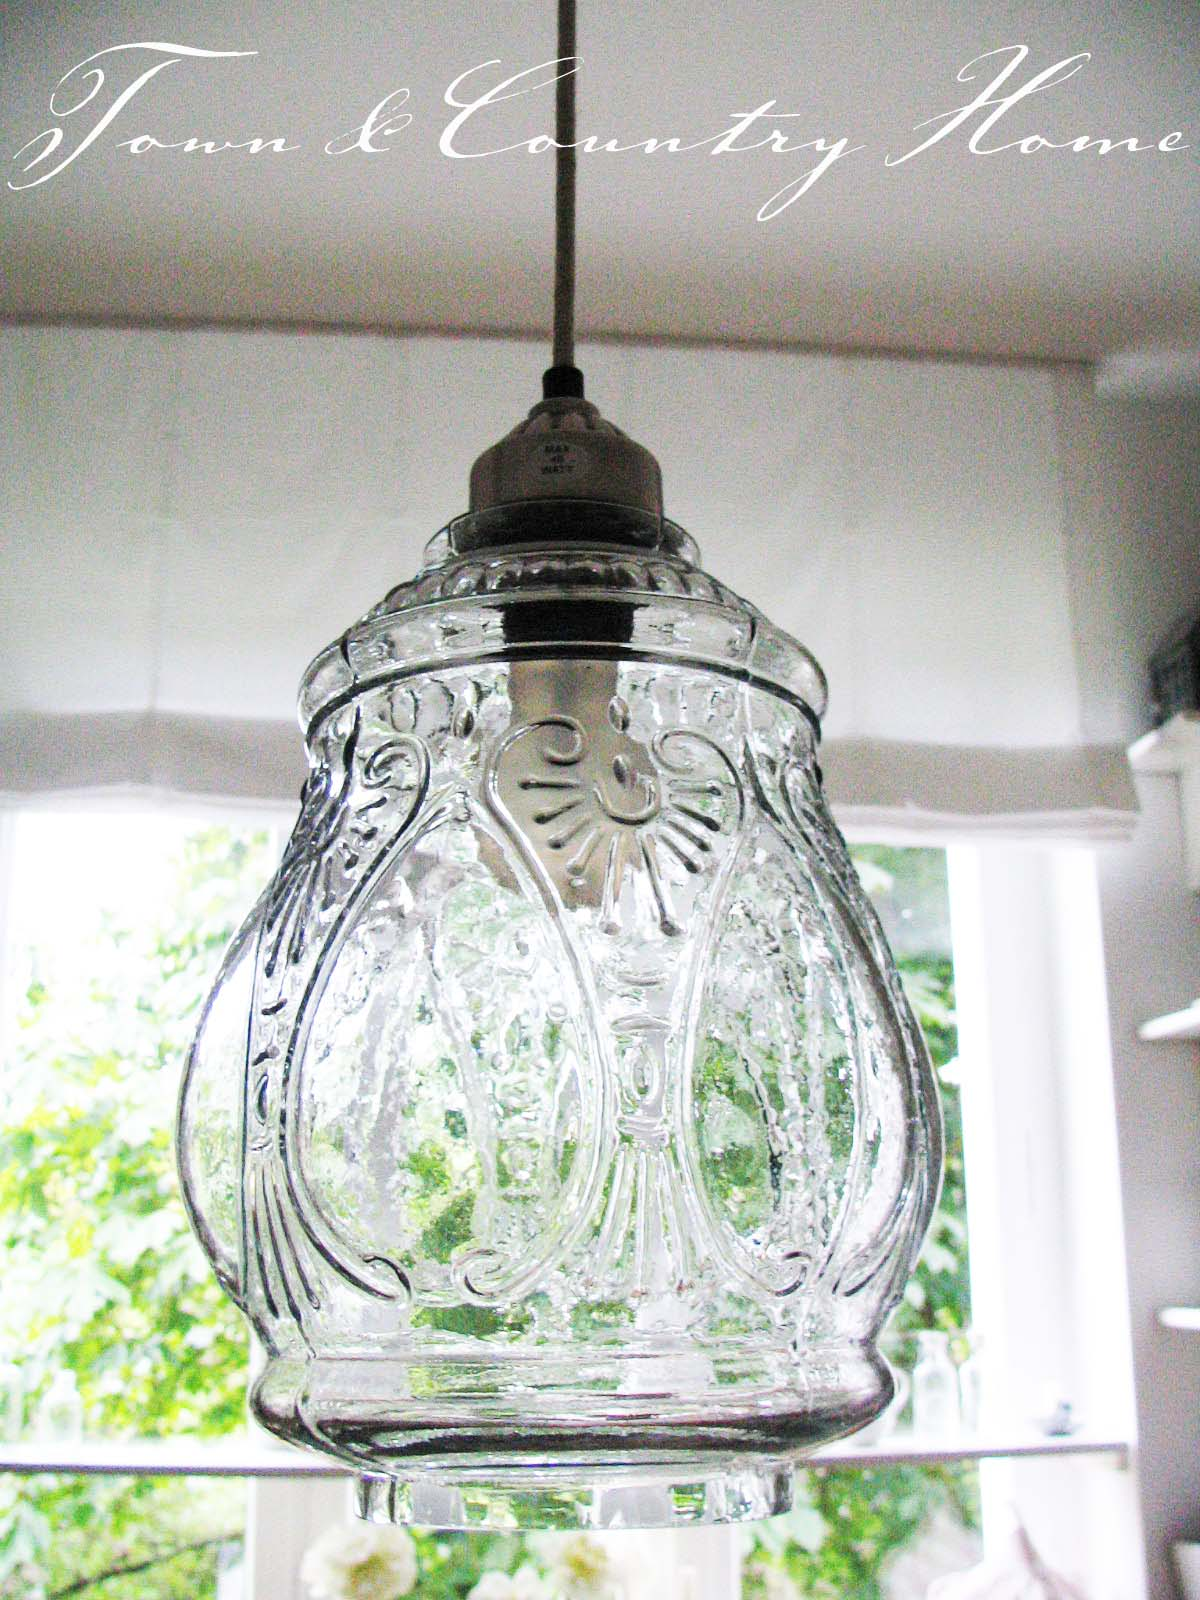 Town country home eine neue lampe for Deckenlampe lang